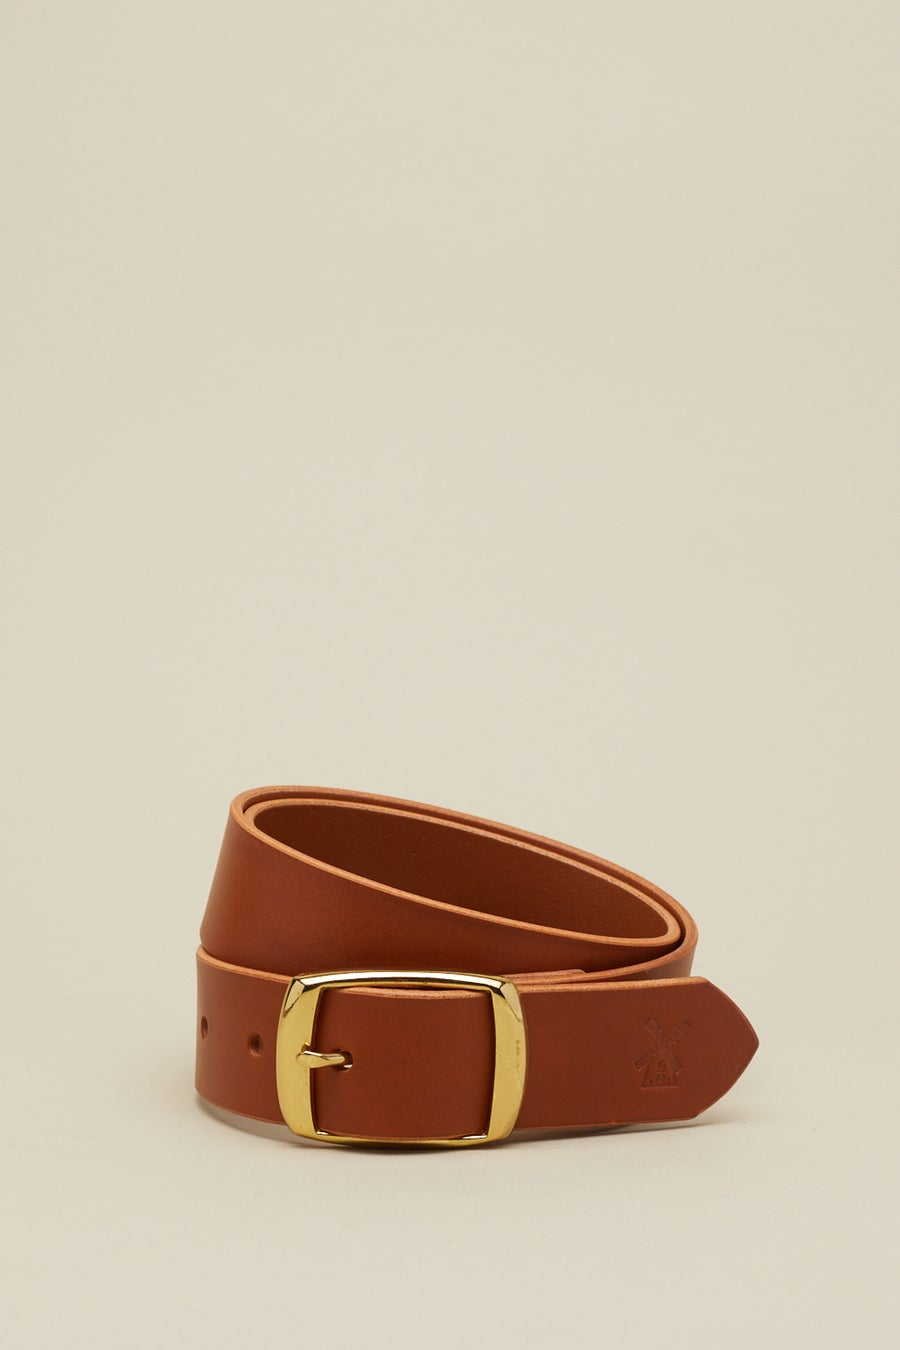 Image of Square Buckle in Tan